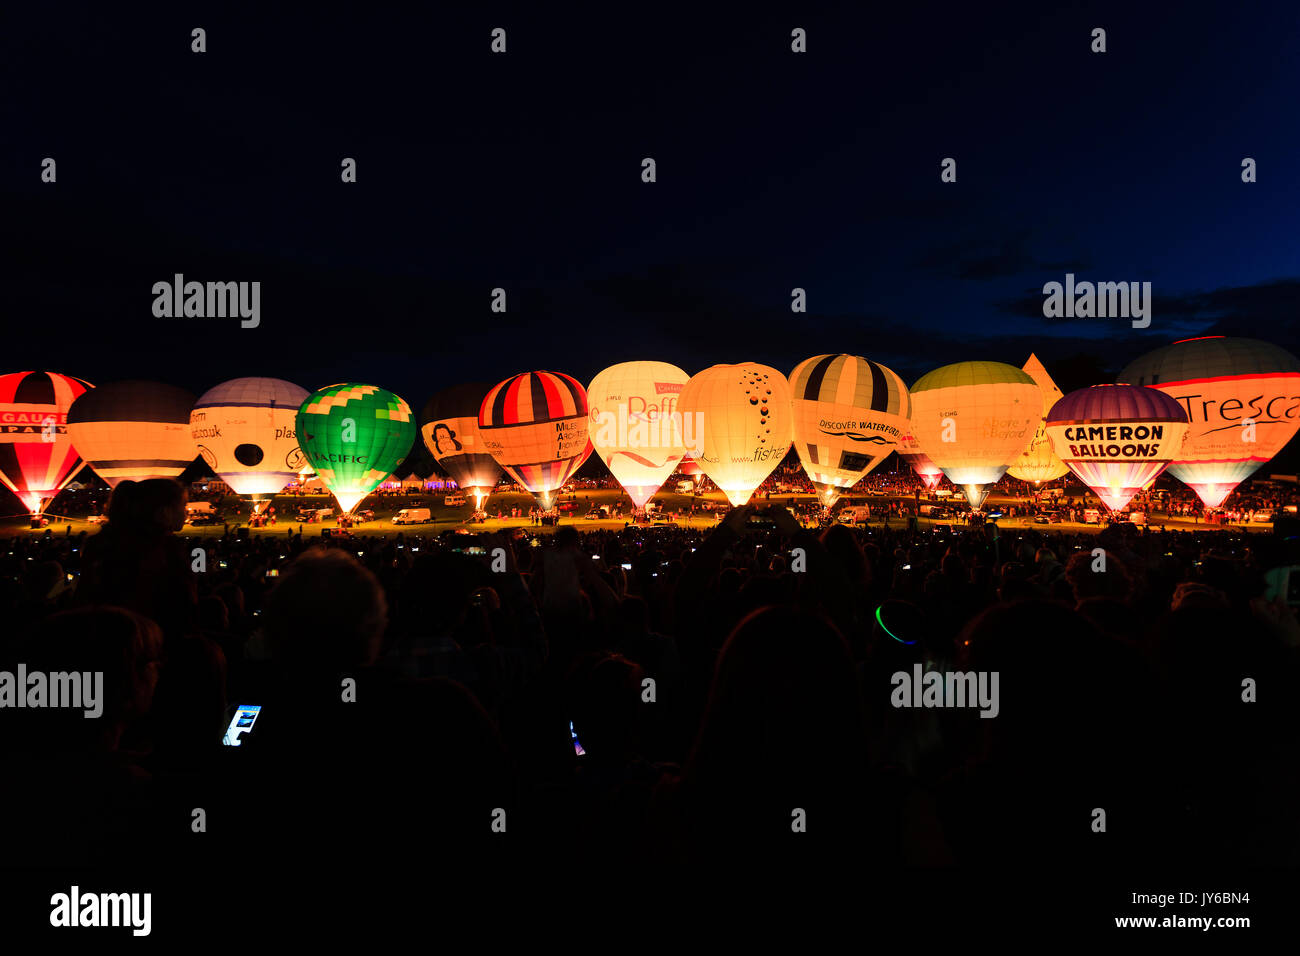 A view of the Night Glow at Bristol Balloon Fiesta 2017 at Ashton Court, Bristol. - Stock Image